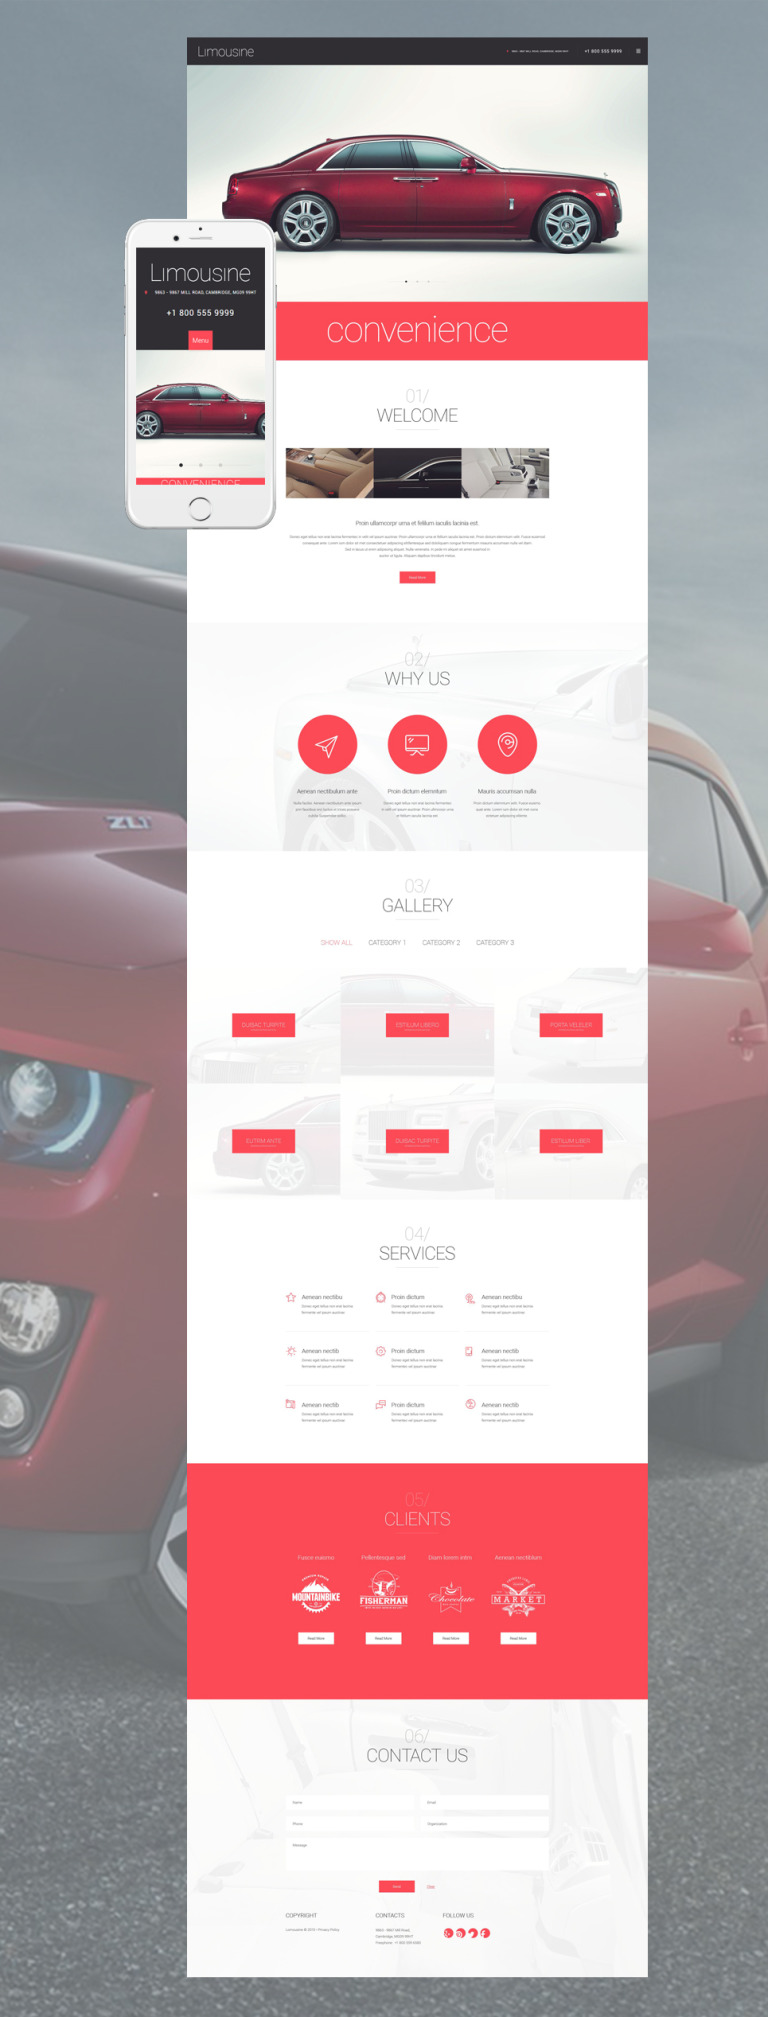 Limousine WordPress Theme New Screenshots BIG